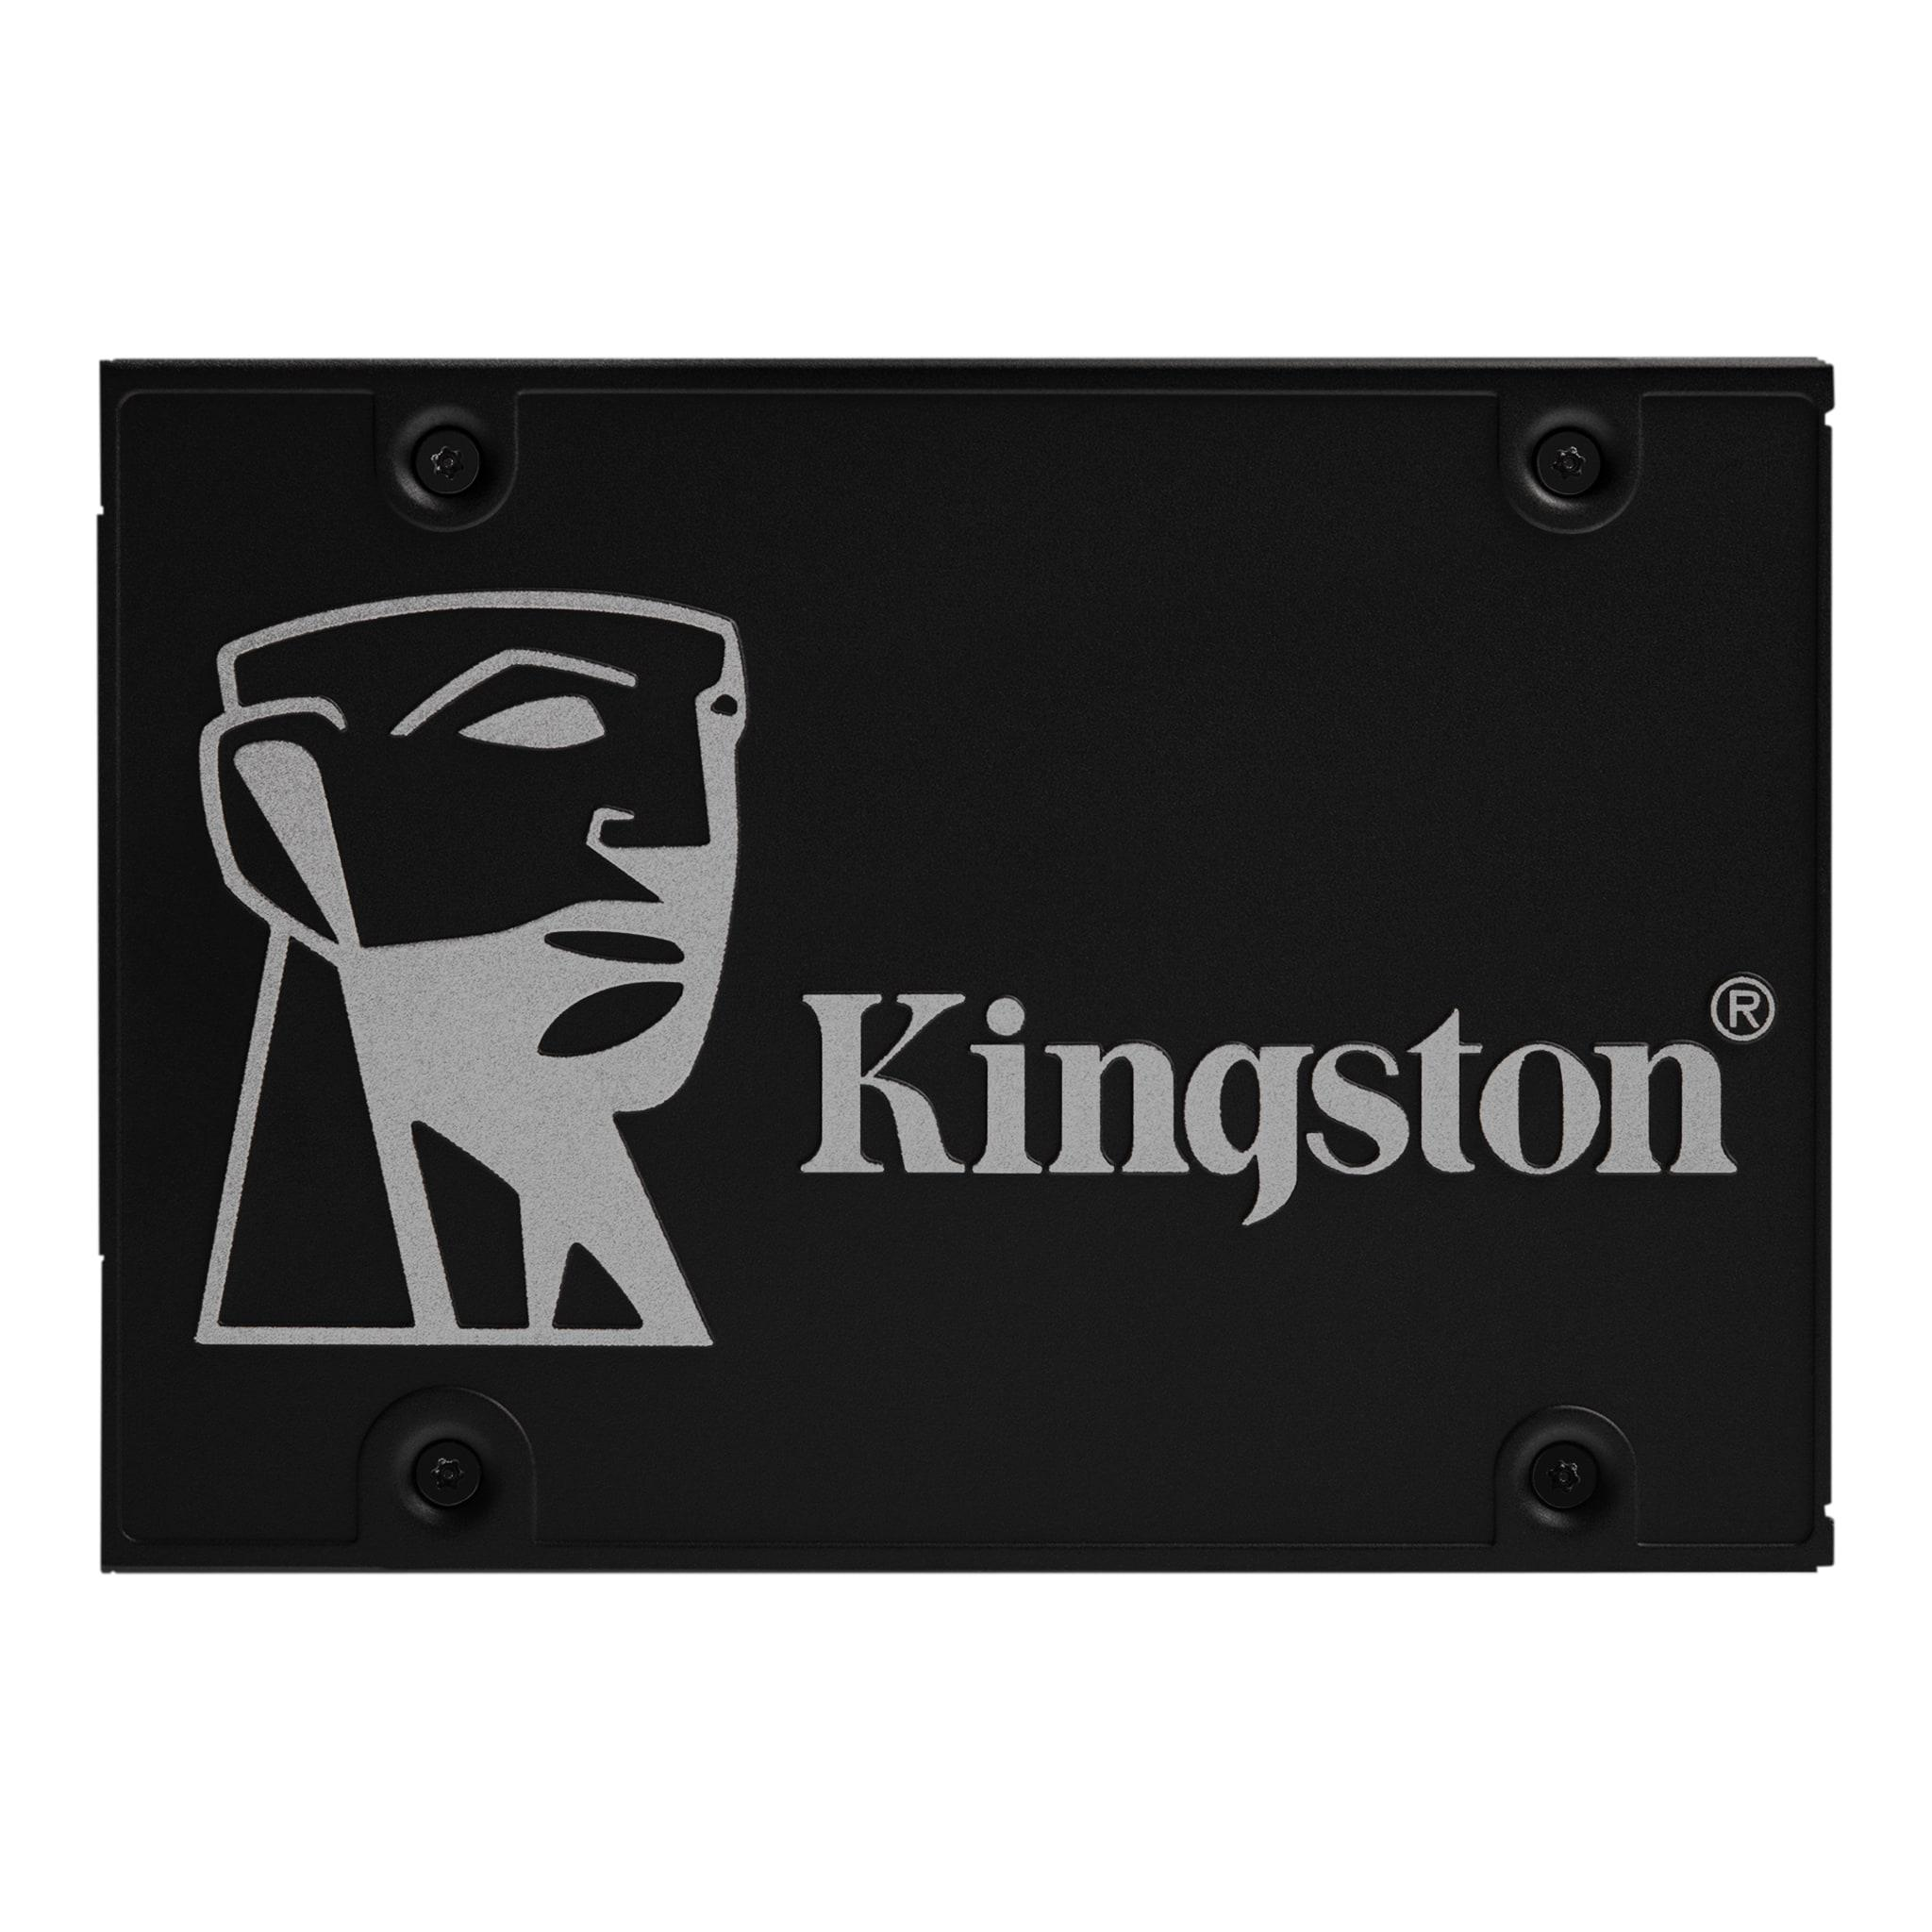 Solid State Drive (SSD) Kingston KC600 512 GB